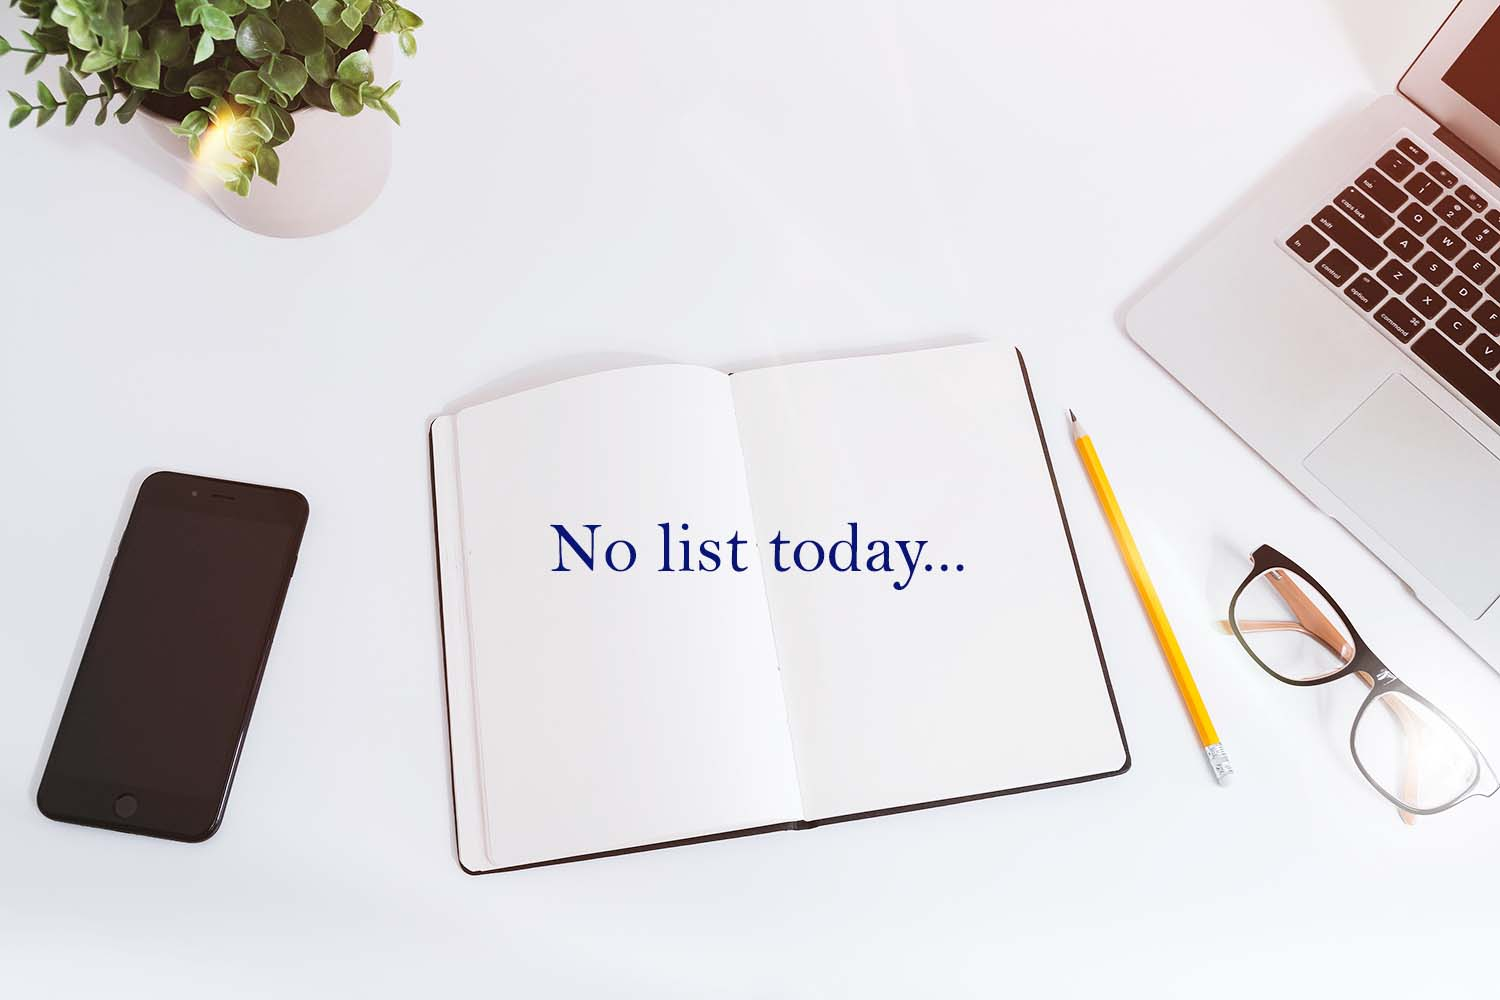 No list today: the no-list to-do list